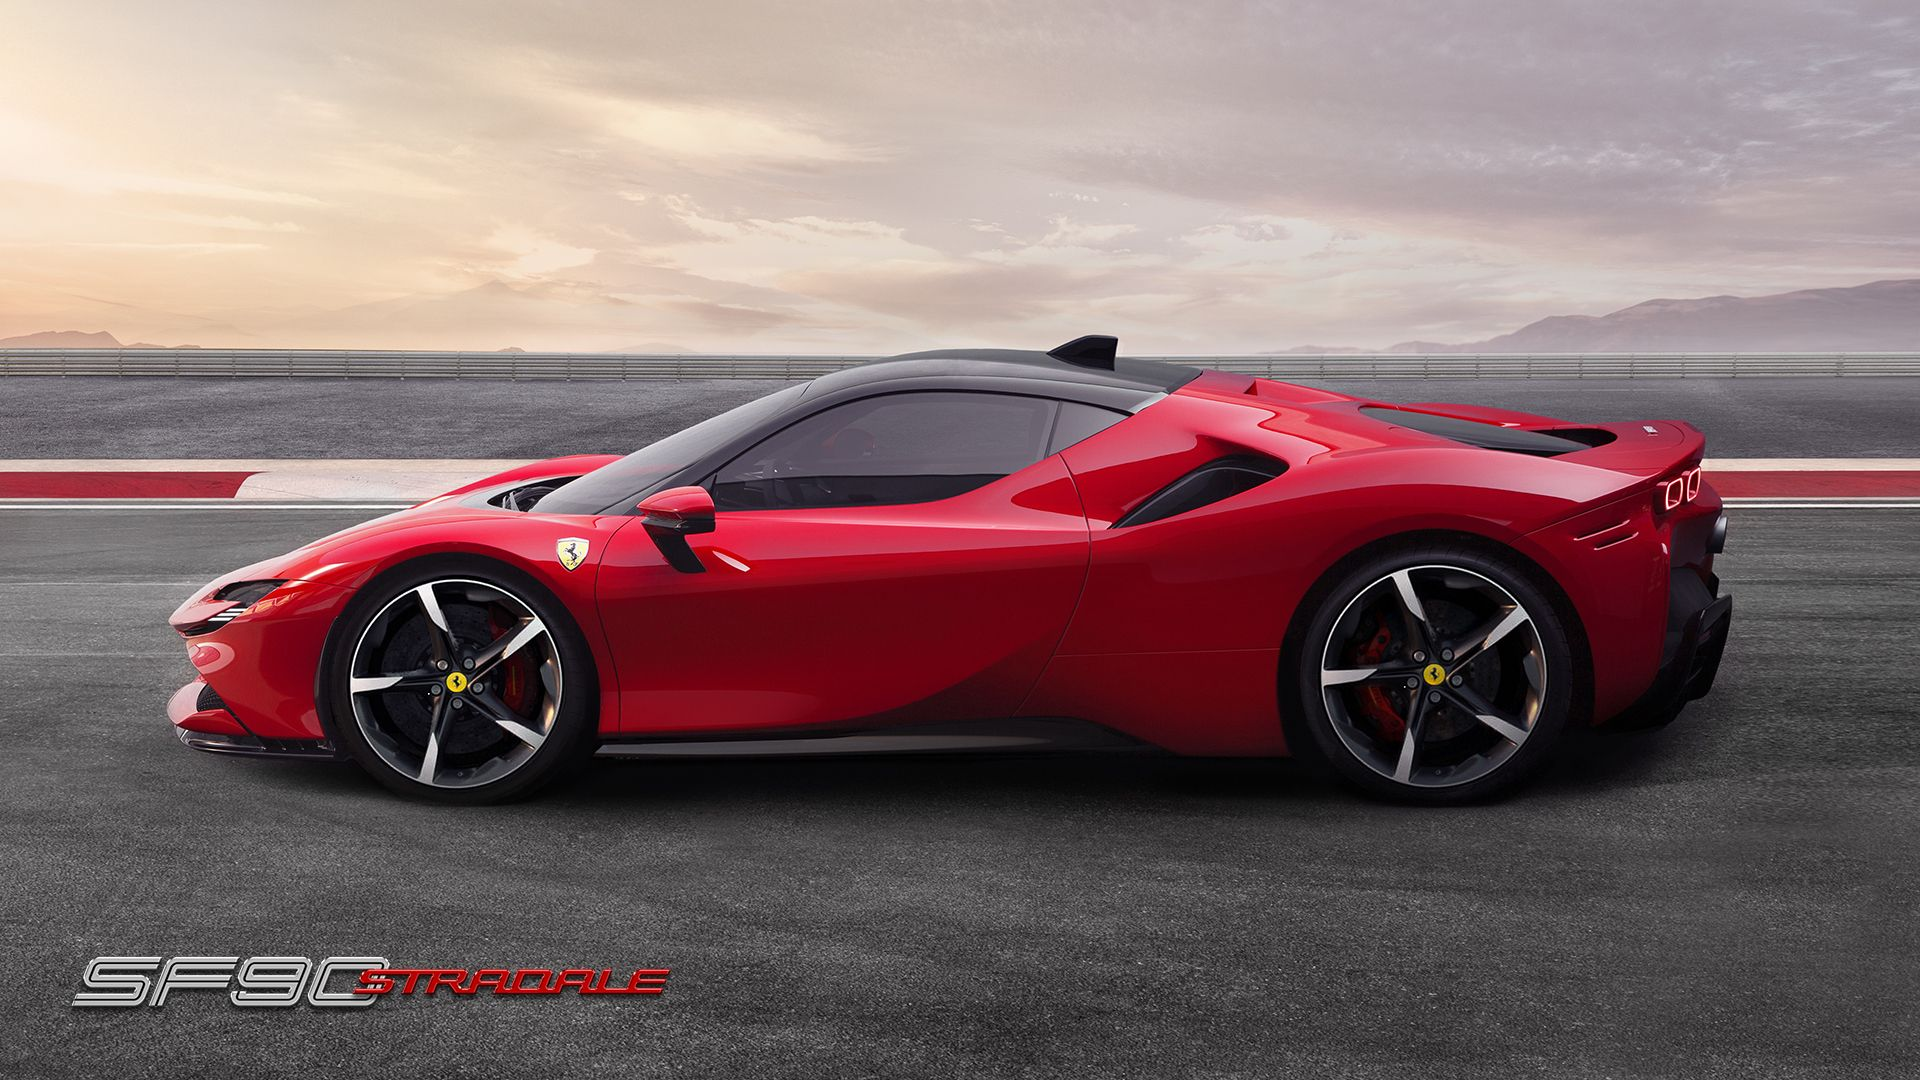 Ferrari Sf90 Stradale Spezifikationen Fotos 2019 2020 2021 Autoevolution In Deutscher Sprache